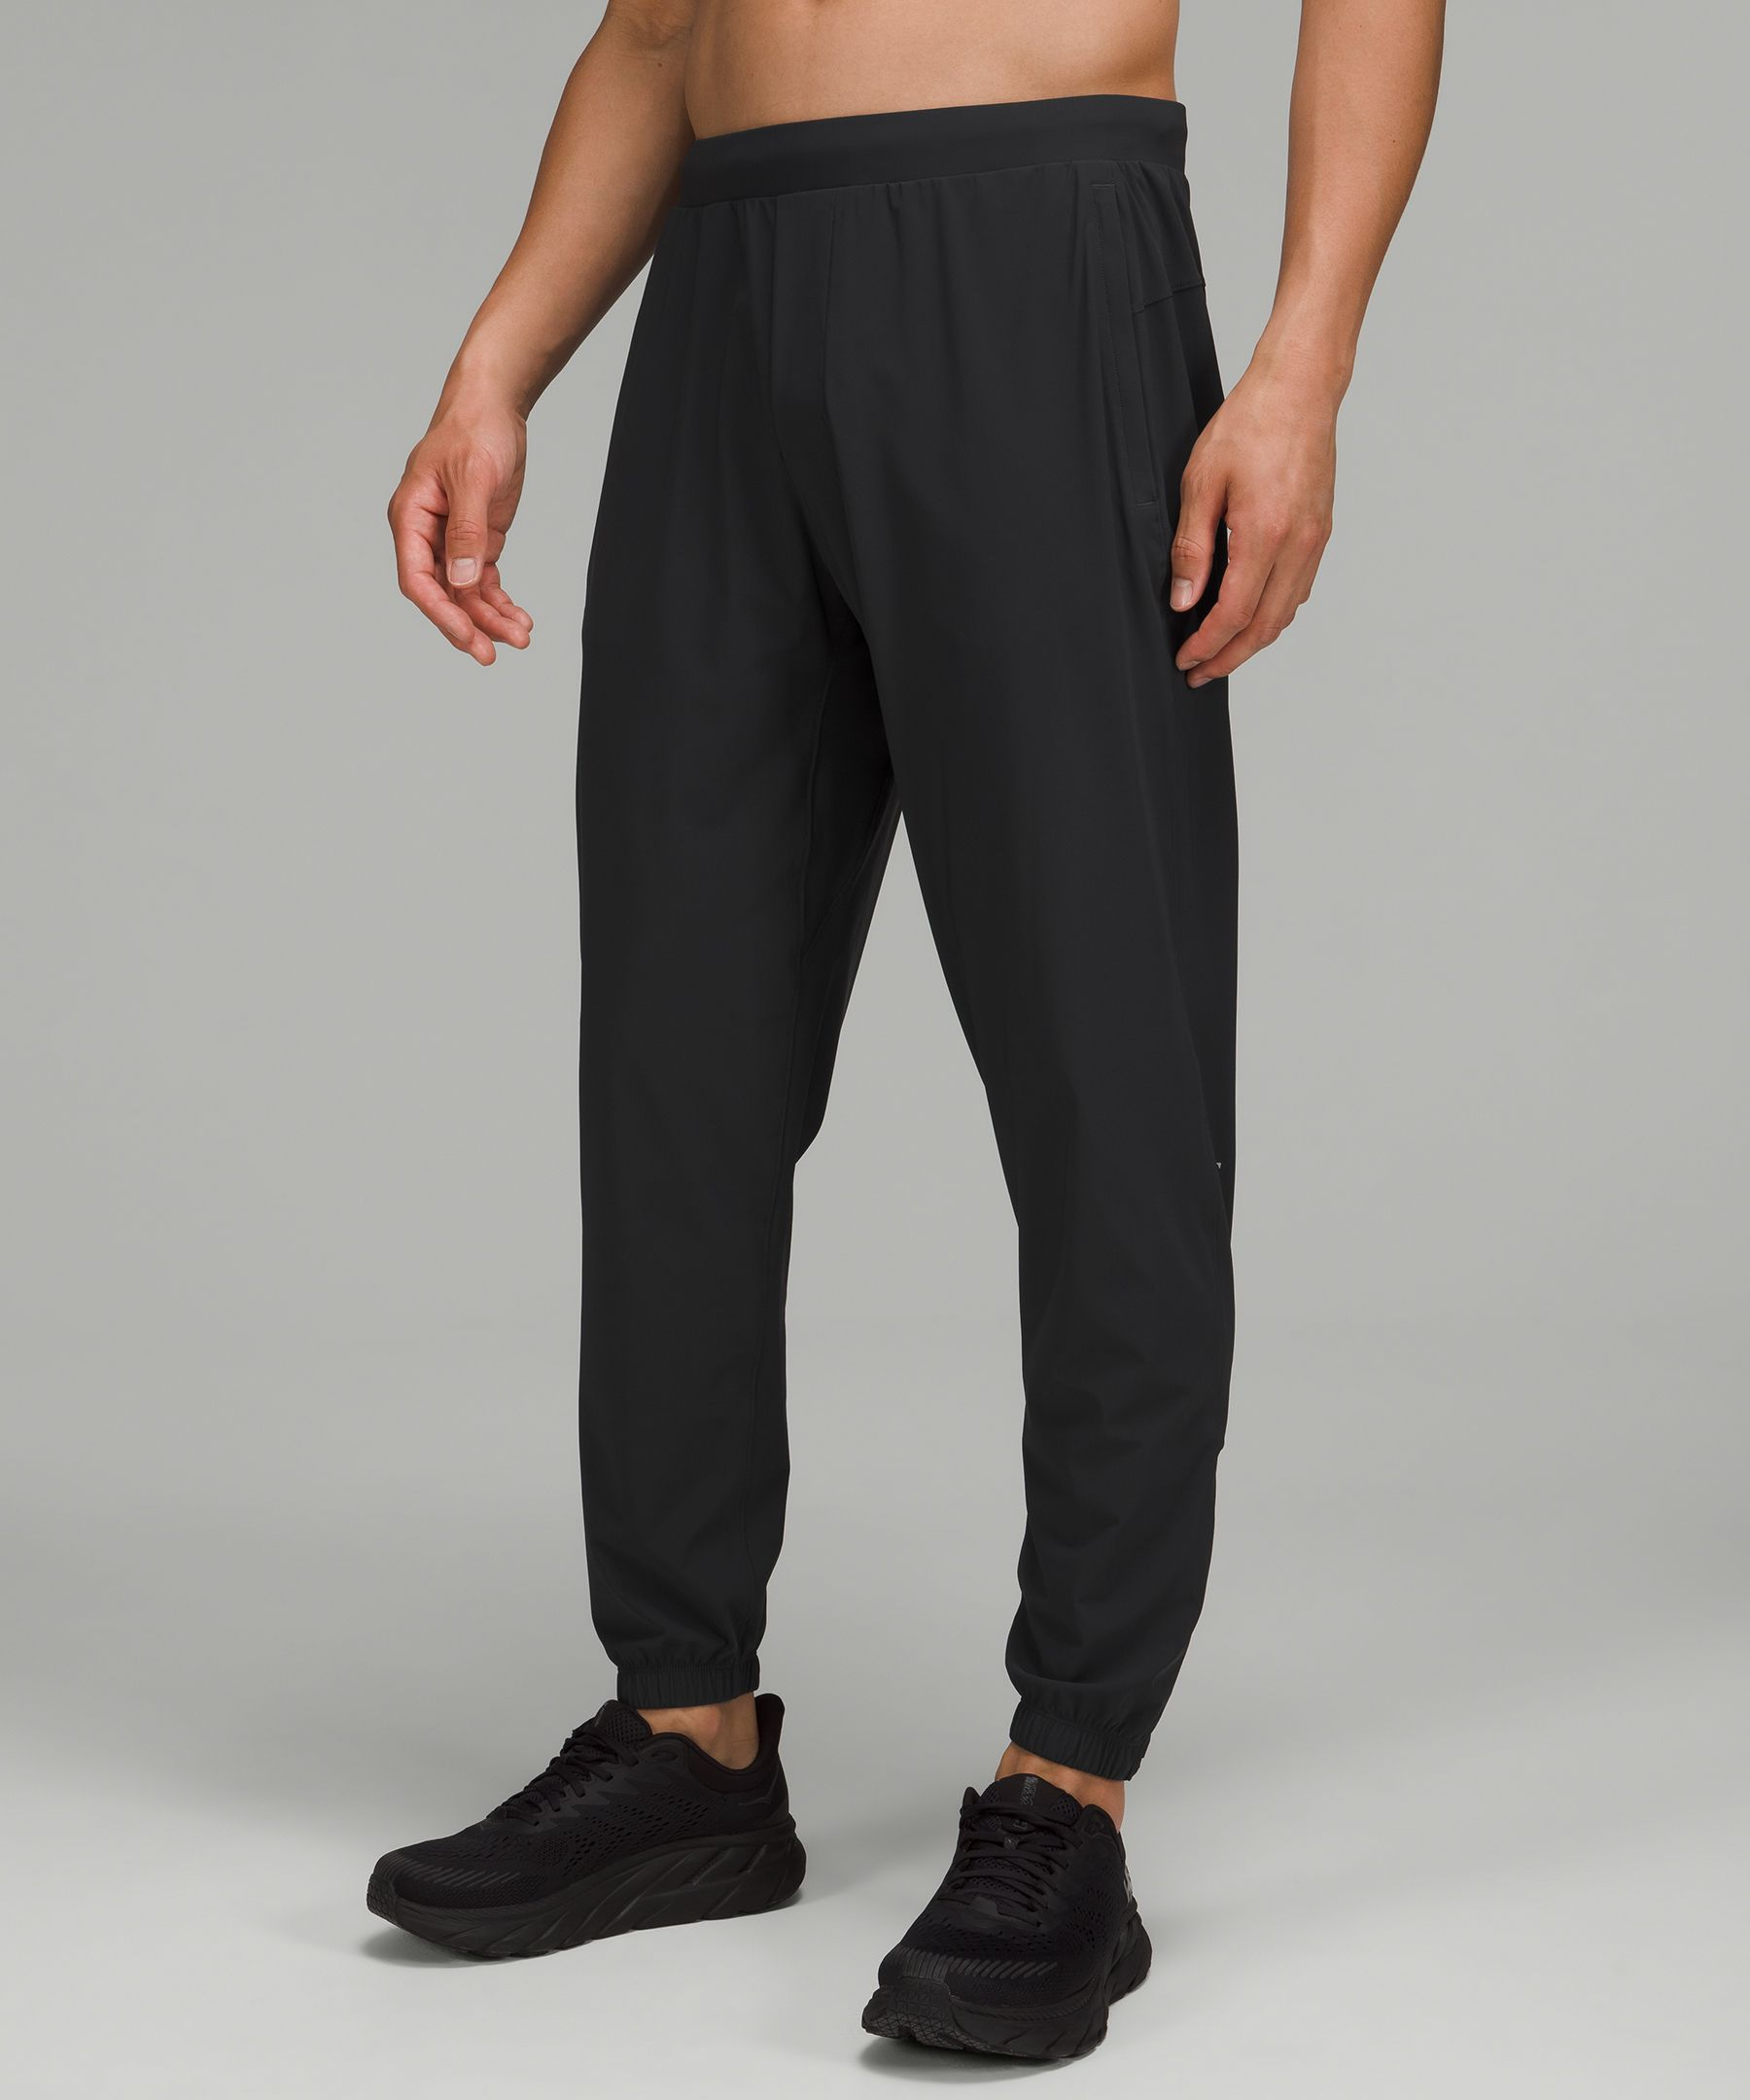 These lightweight running  joggers have zips at the cuff  for quick on and off when  you\\\'re warming up.